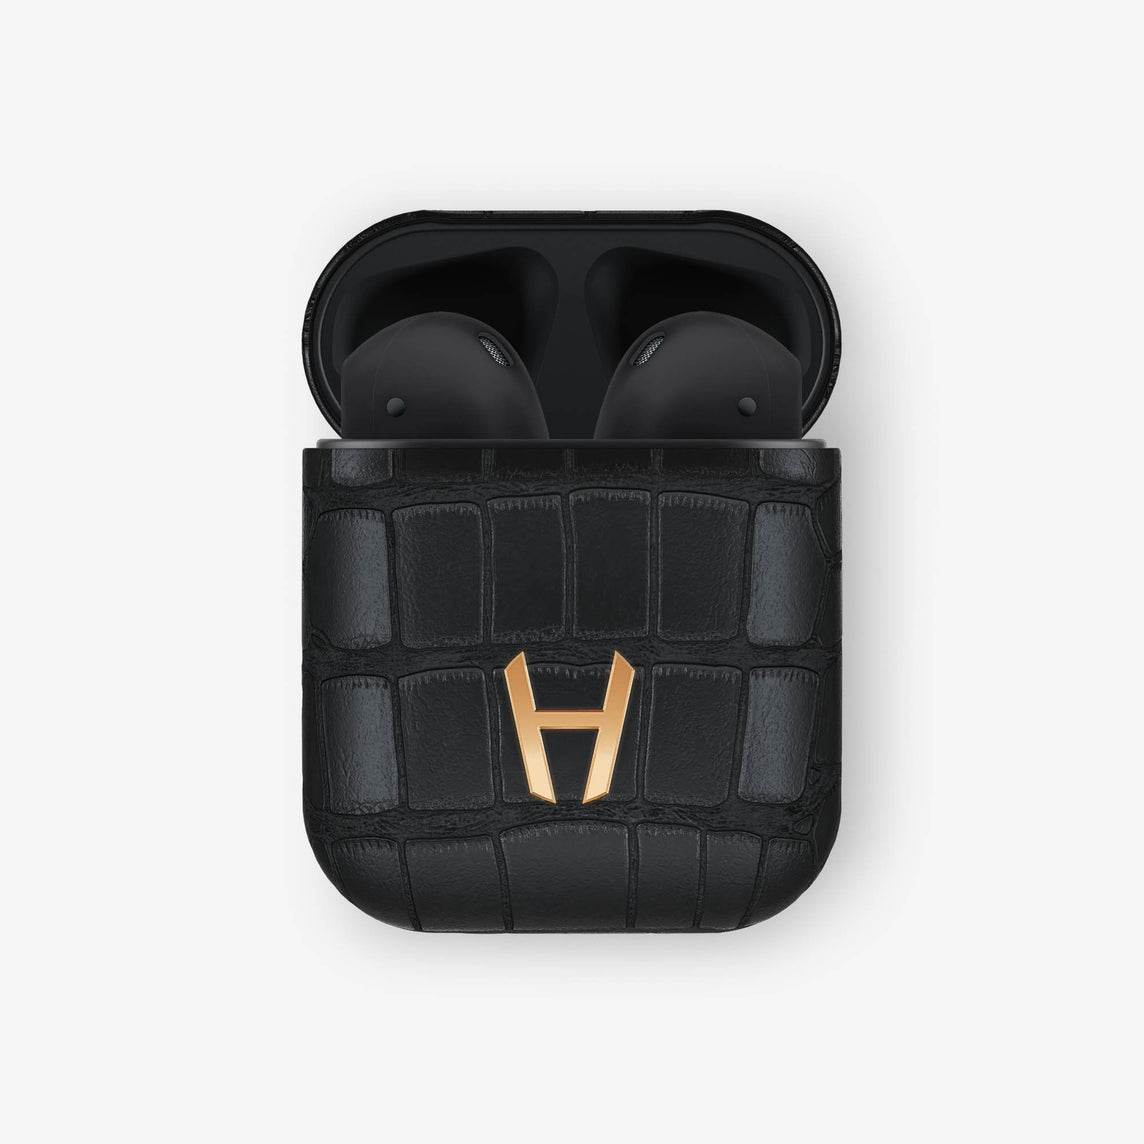 Black Alligator Hadoro AirPods finishing rose gold - Hadoro Luxury Cases